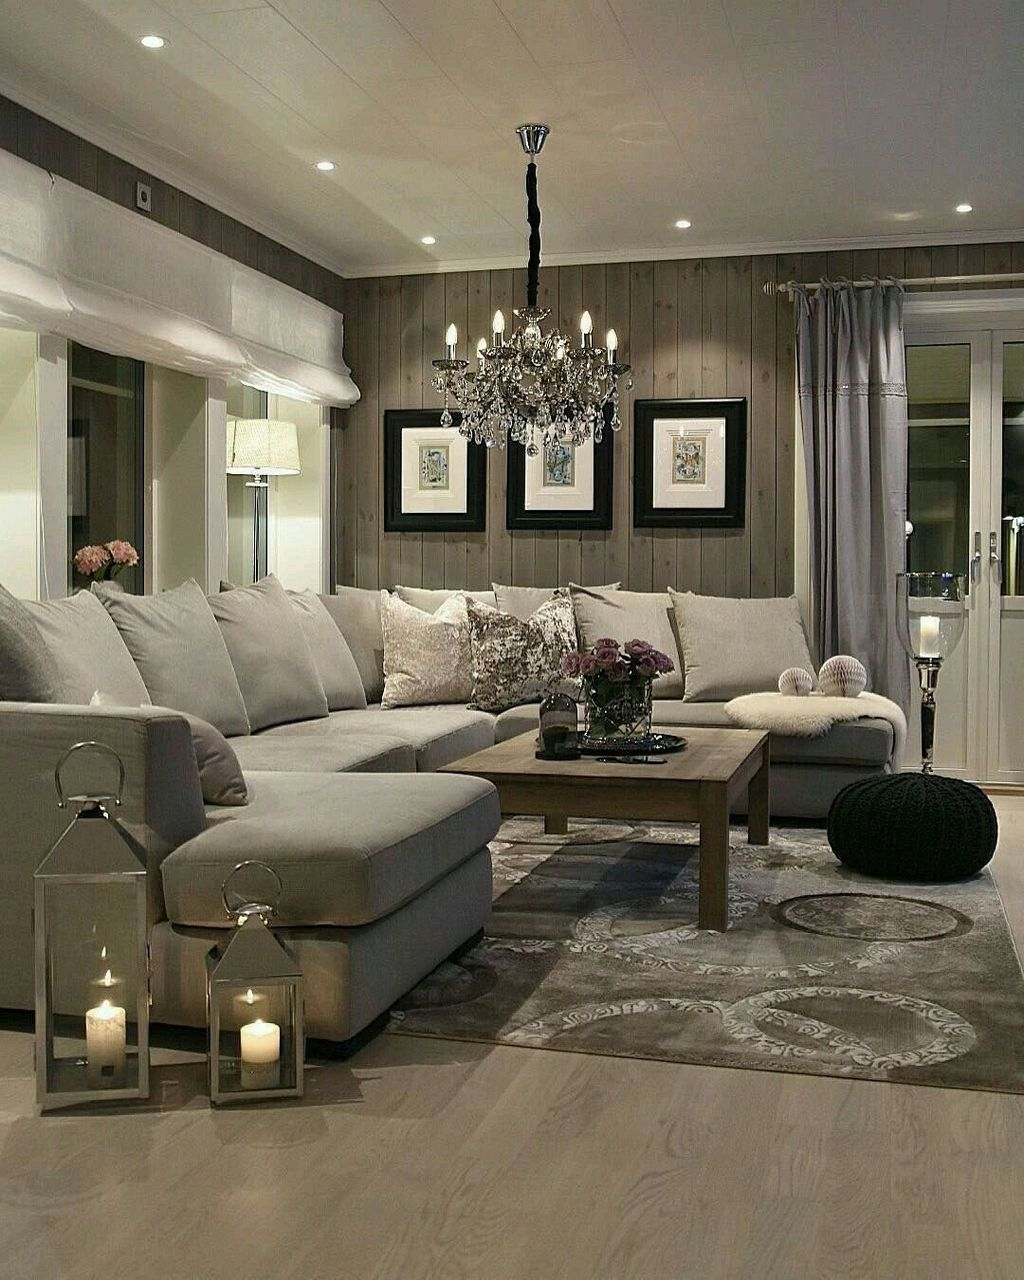 The Best Living Room Decorating Ideas Trends 2019 42